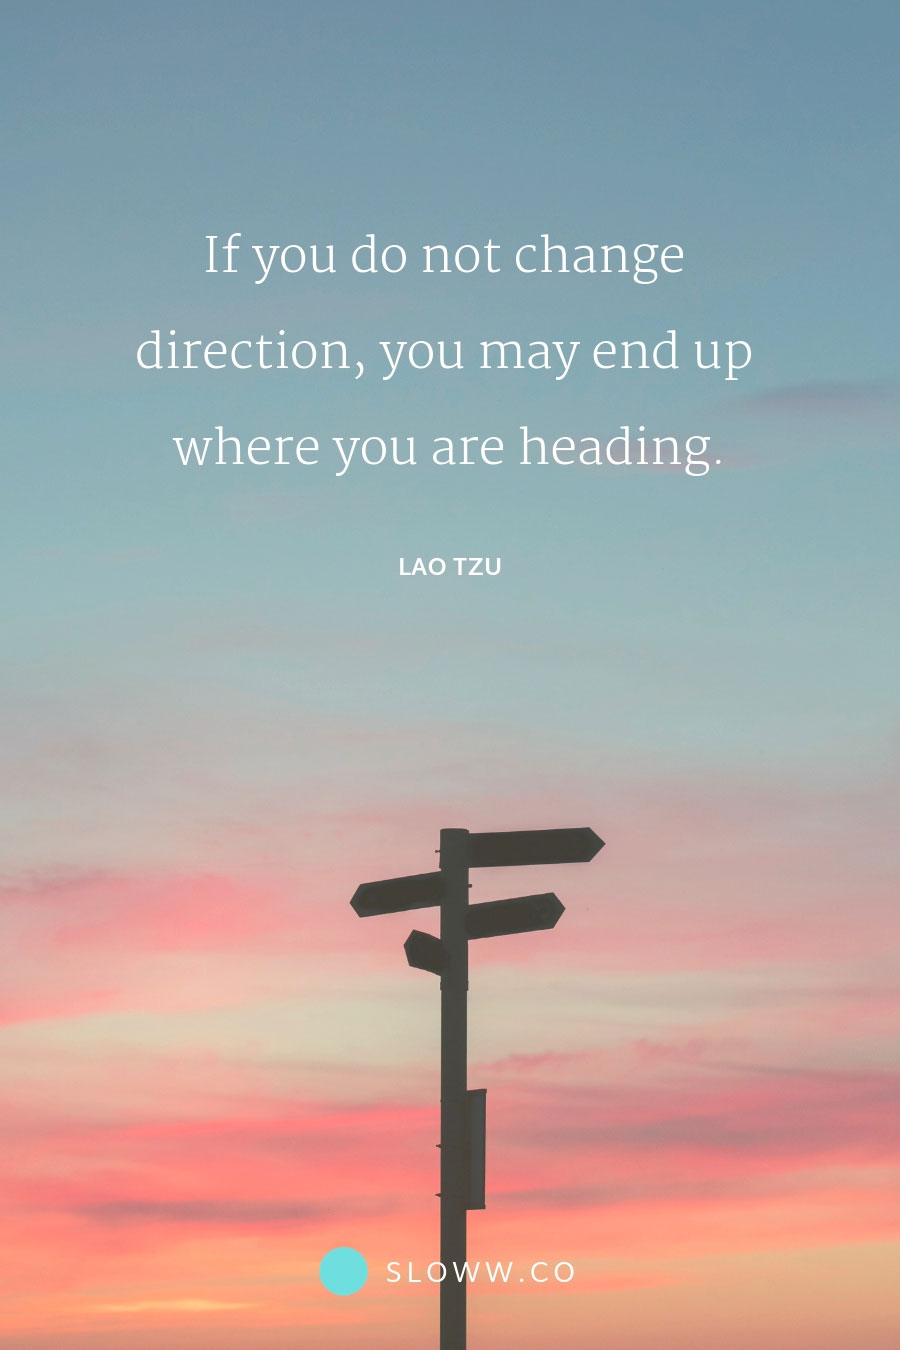 Sloww Lao Tzu Change Direction Quote